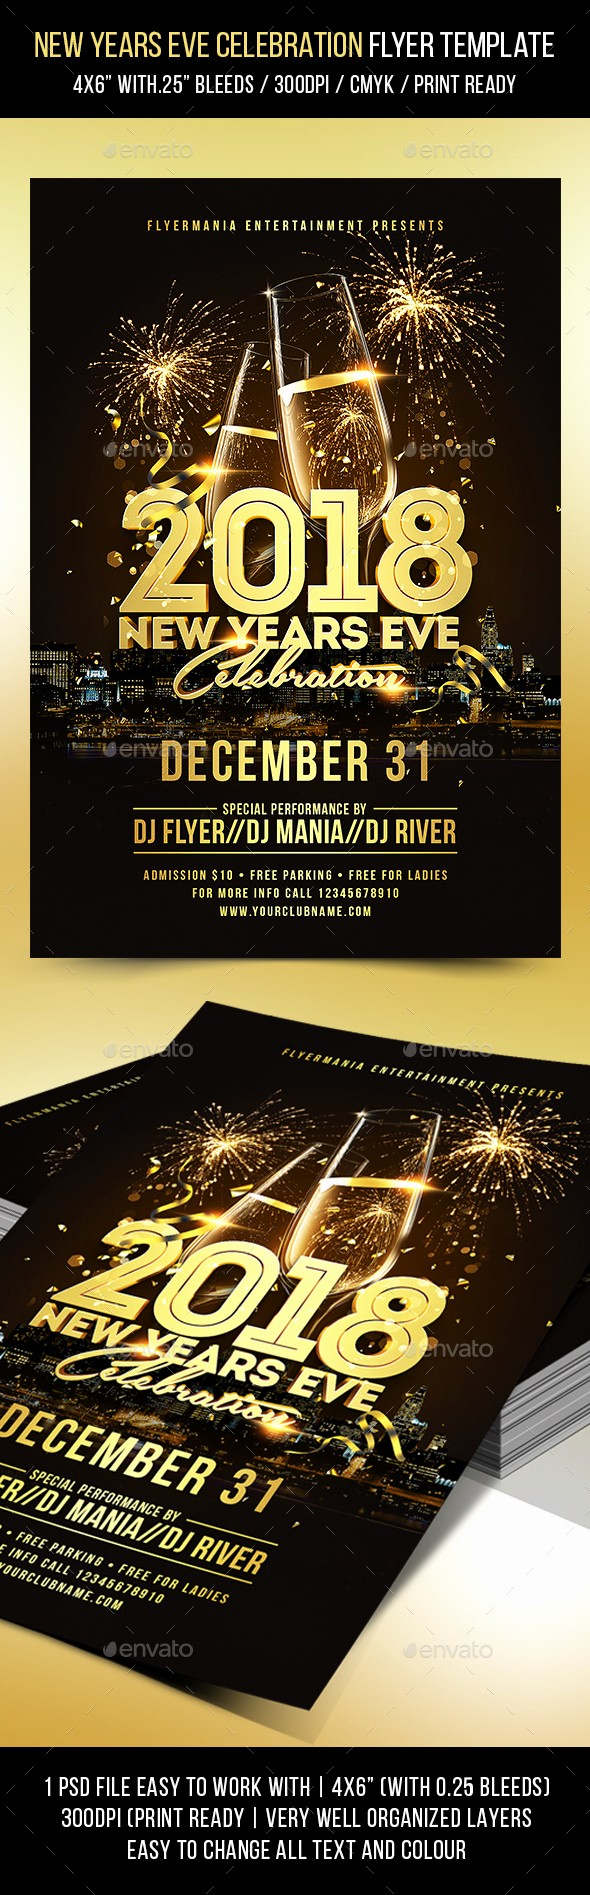 New Years Eve Menu Template Lovely New Years Eve Celebration Flyer Template by Flyermania